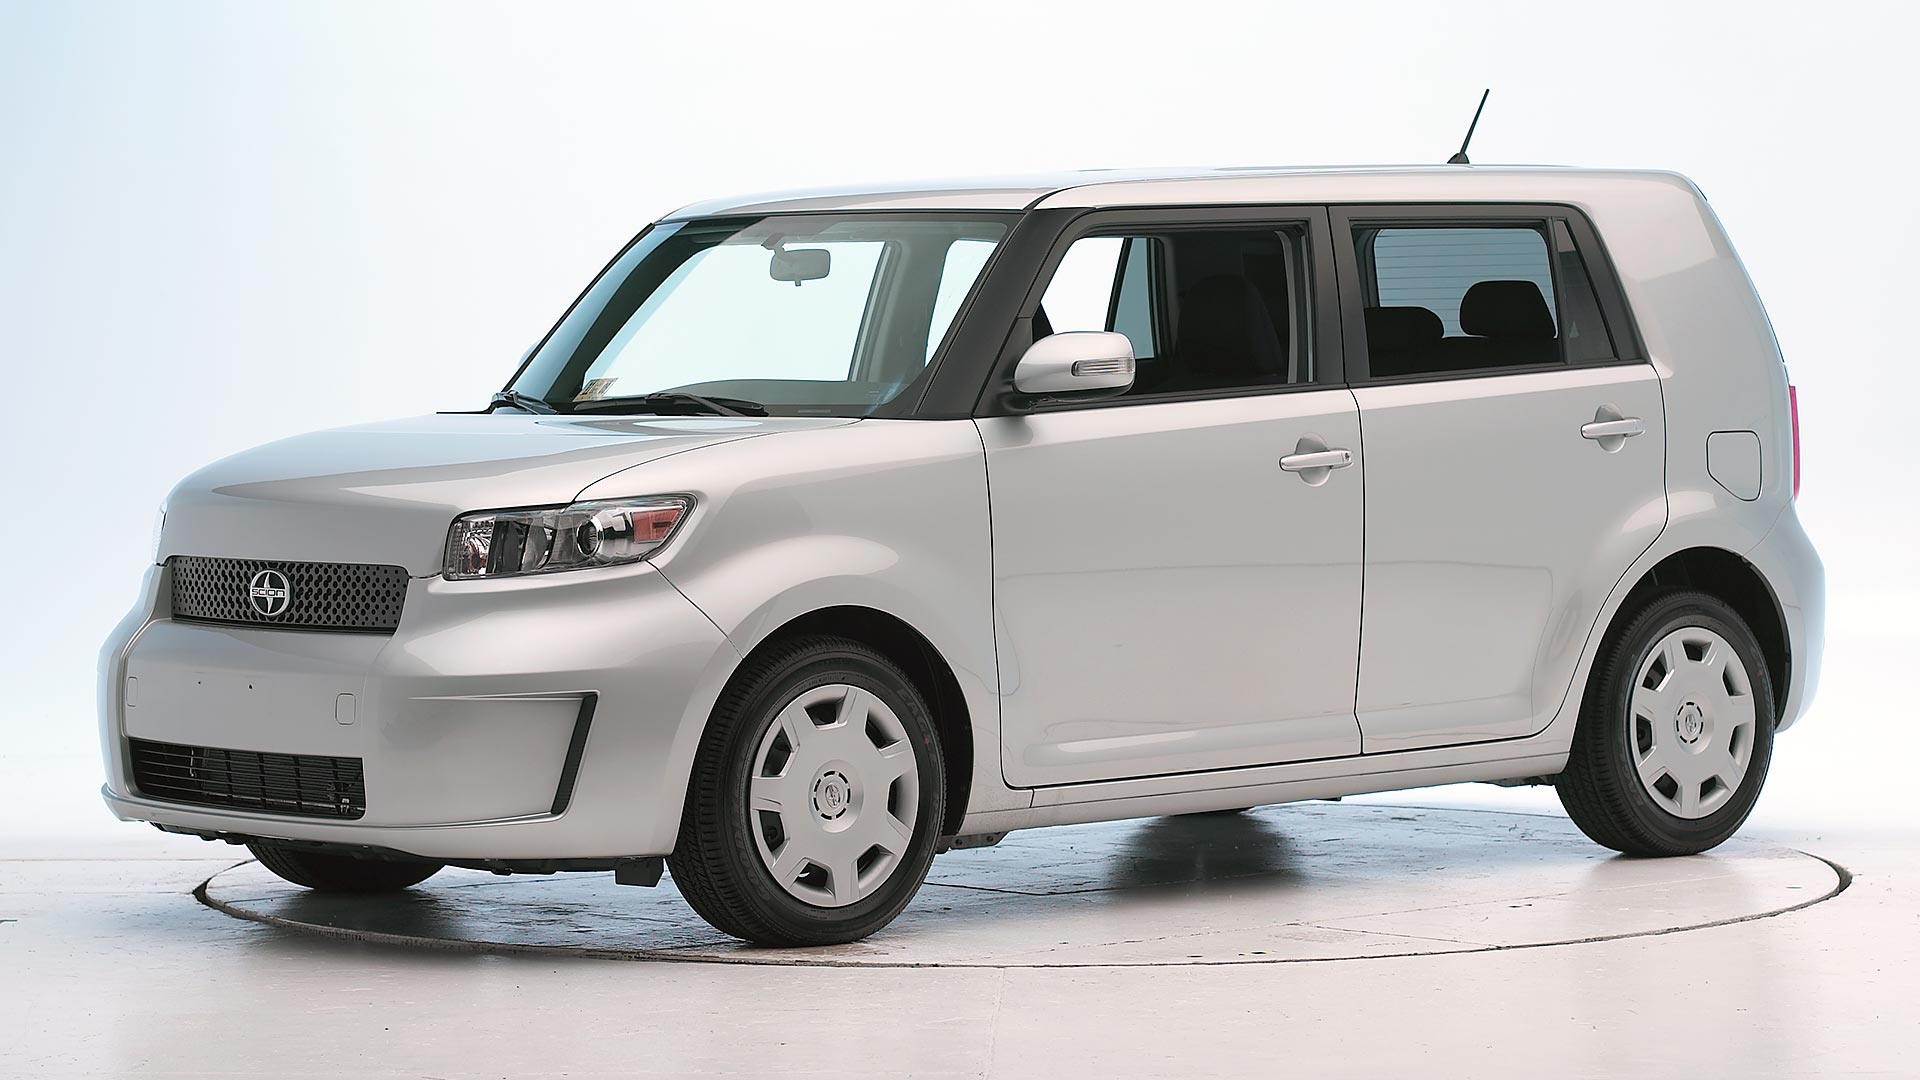 2011 Scion xB 4-door wagon